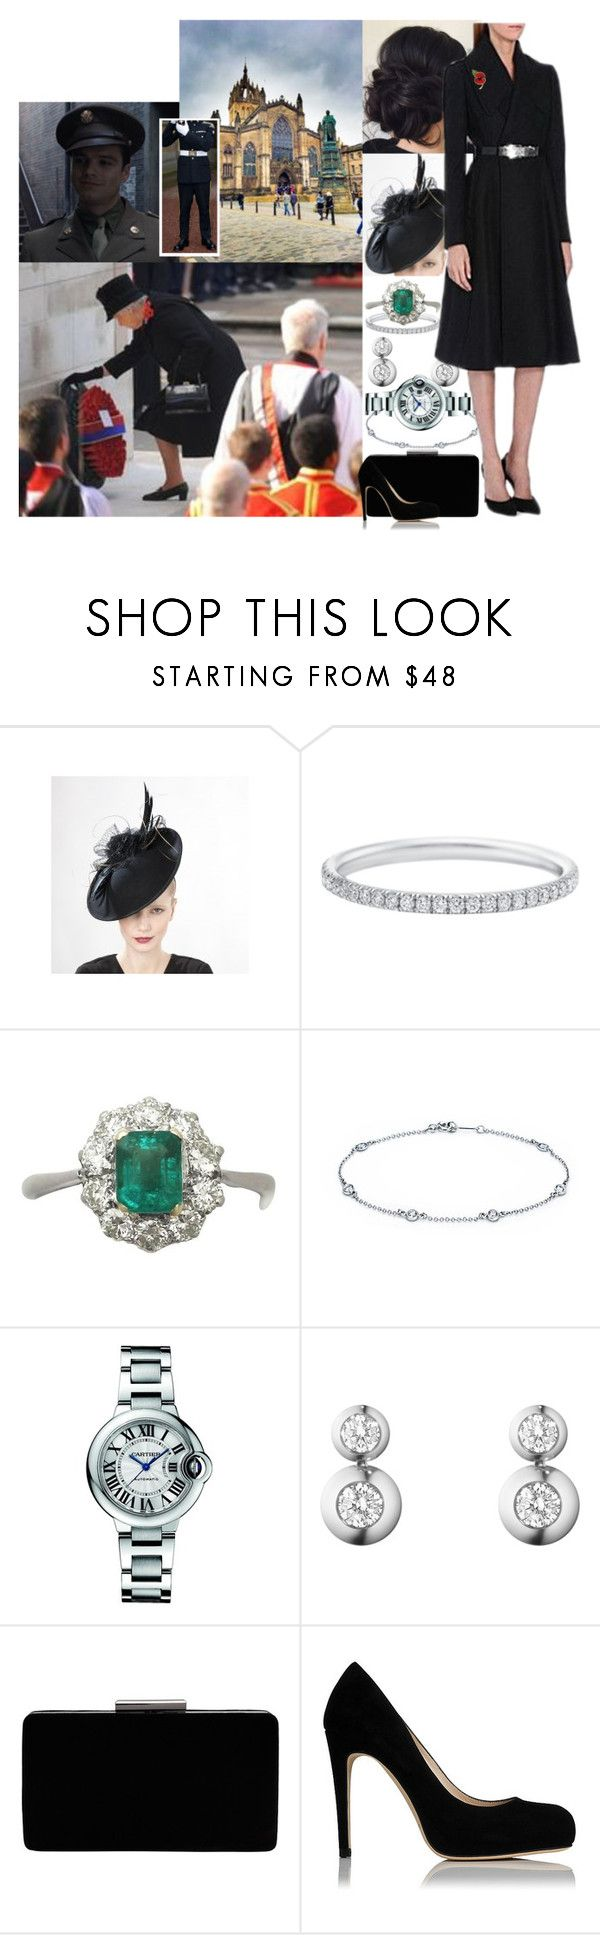 """Attending a service at St Giles on Remembrance Sunday and lying a wreath at the cenotaph"" by maryofscotland ❤ liked on Polyvore featuring Sebastian Professional, Elsa Peretti, Cartier, Georg Jensen, John Lewis and Alexander McQueen"